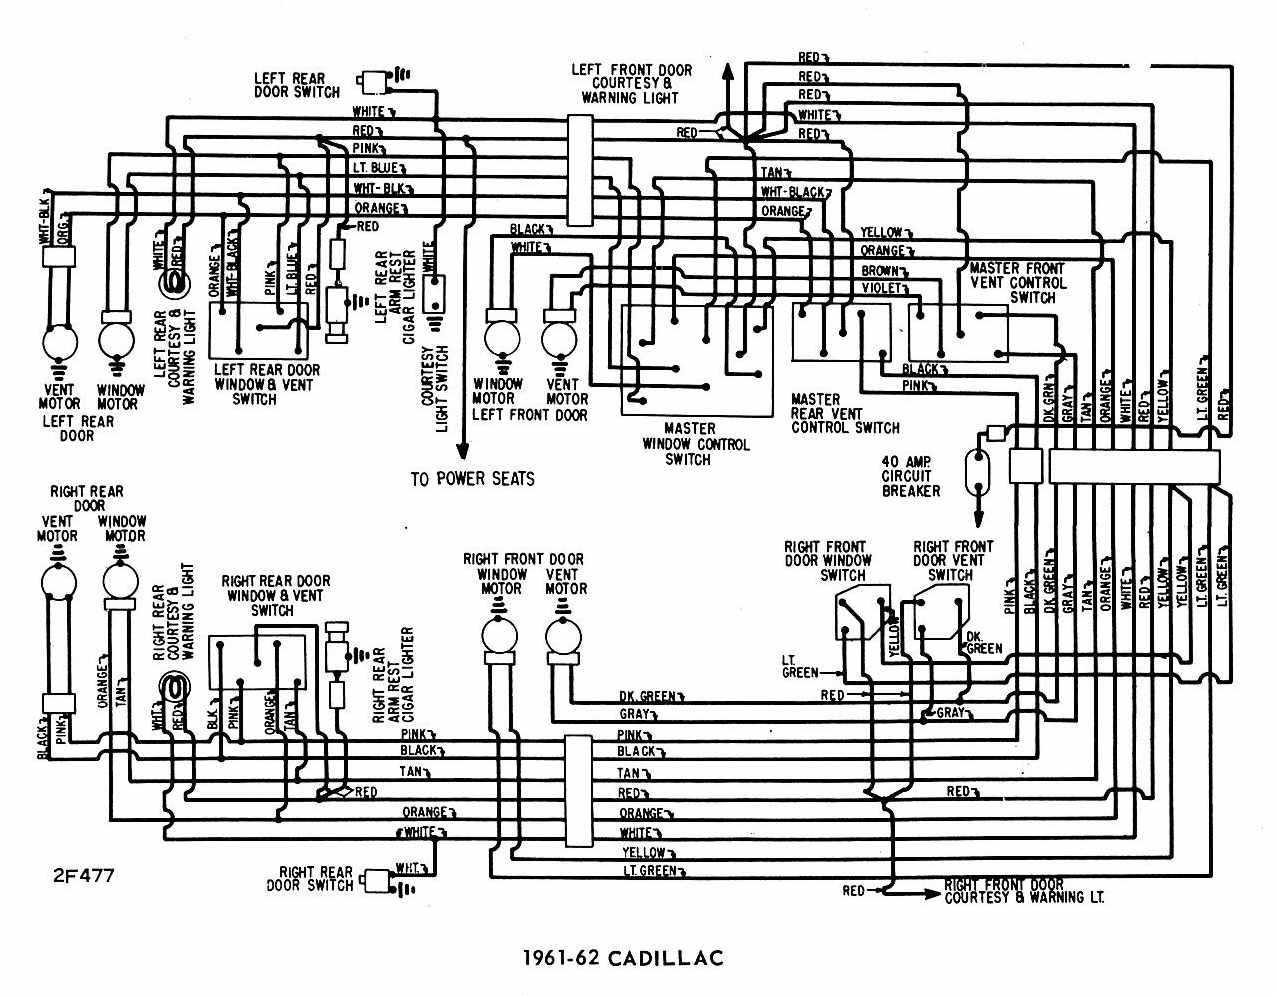 cadillac engine wiring diagram free vehicle wiring diagrams u2022 rh  generalinfo co 2003 Cadillac CTS Fuse Box Wiring Diagram 2003 Cadillac CTS  Thermostat ...